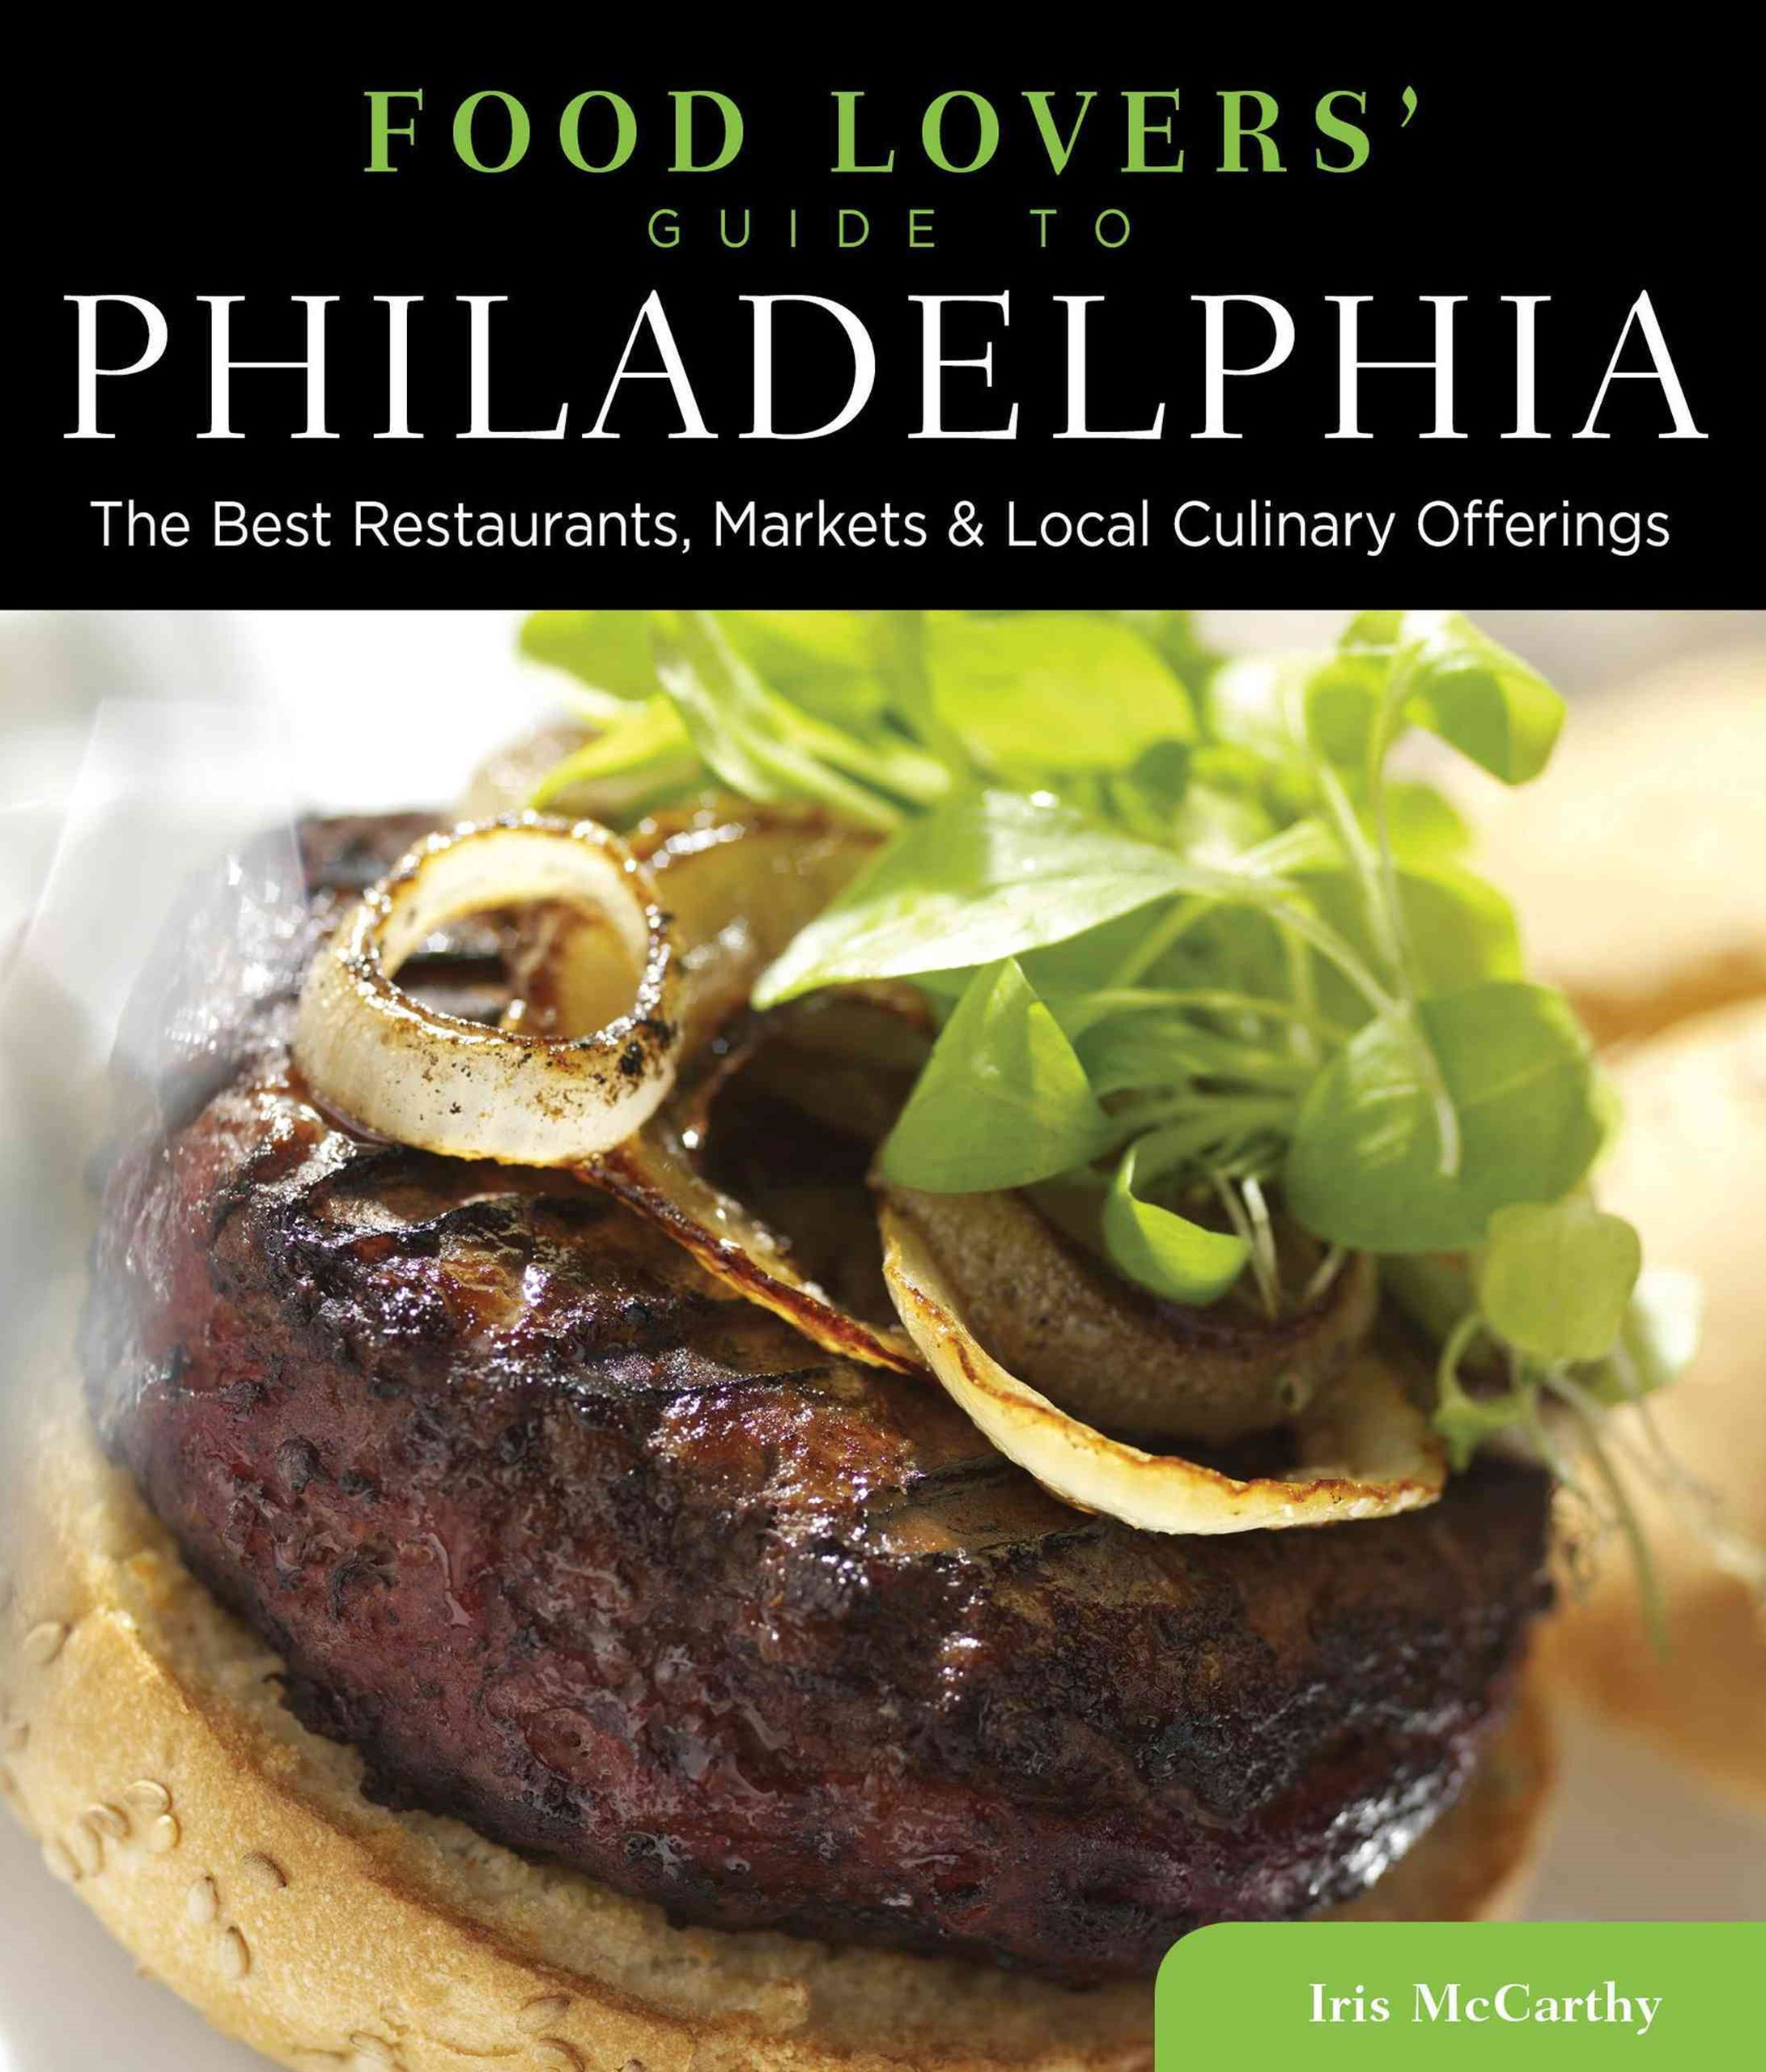 Philadelphia - Food Lovers' Guide